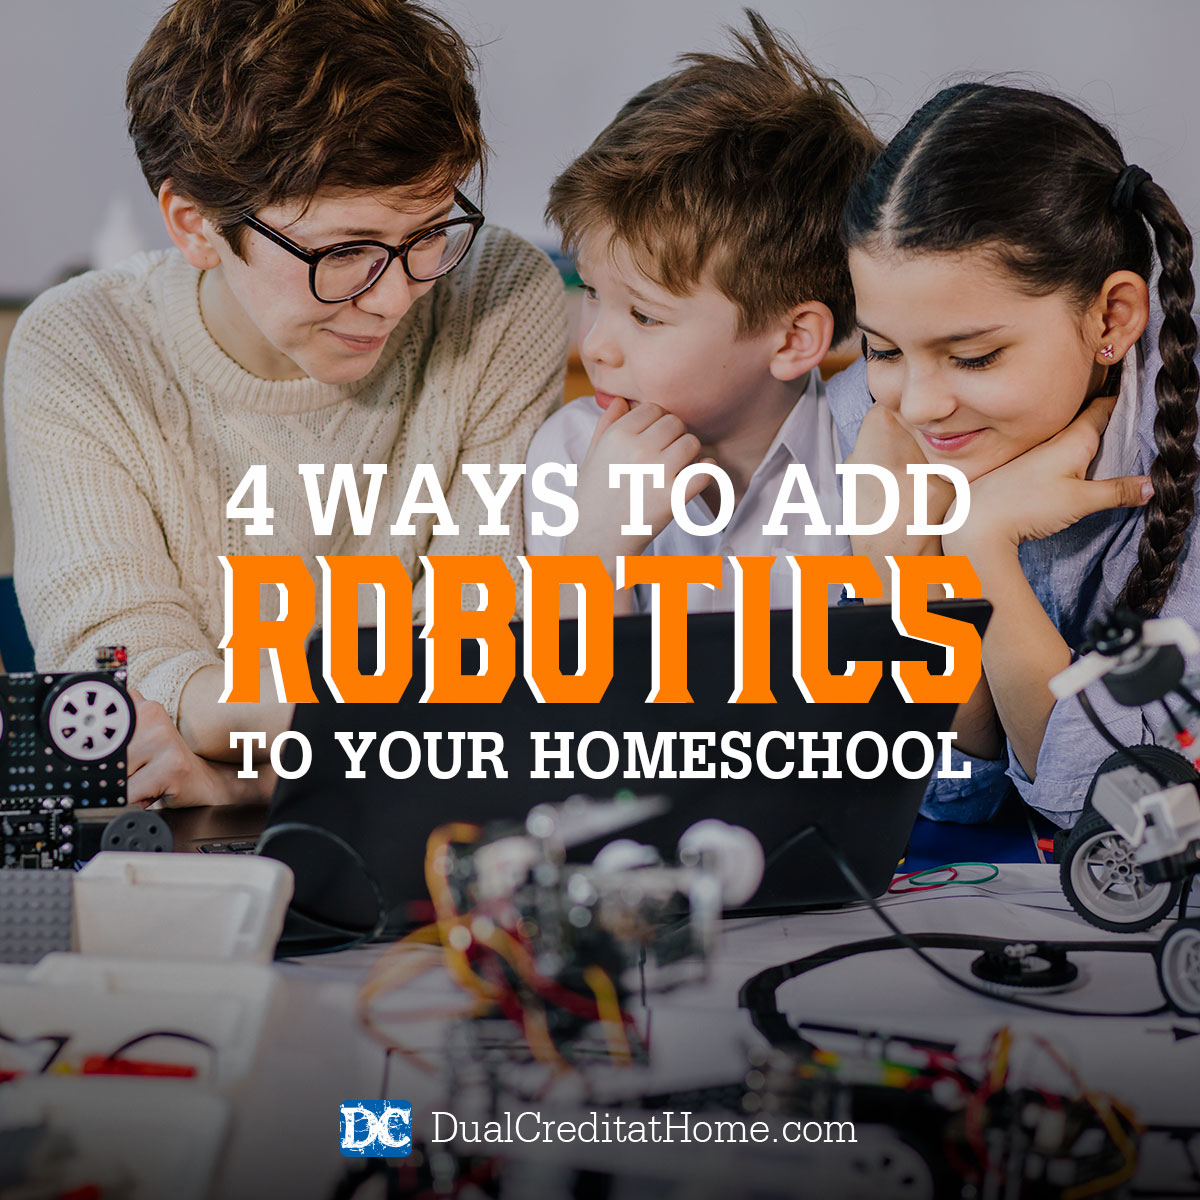 4 Ways to Add Robotics to Your Homeschool